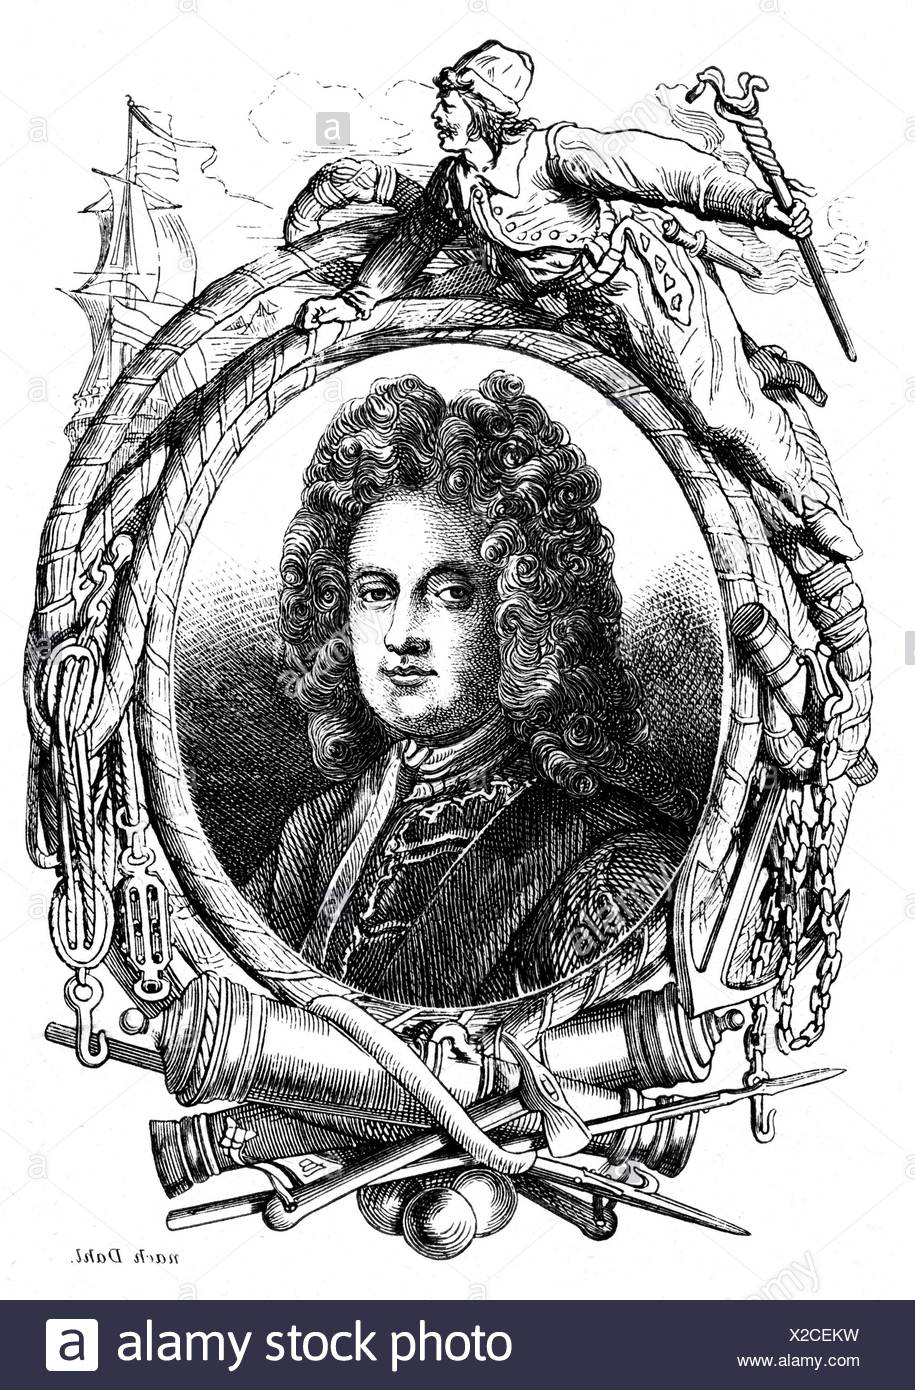 Mordaunt, Charles, 1658 - 25.10.1735, 3rd Earl of Peterborough, English politician and general, portrait, wood engraving, 19th century, Stock Photo